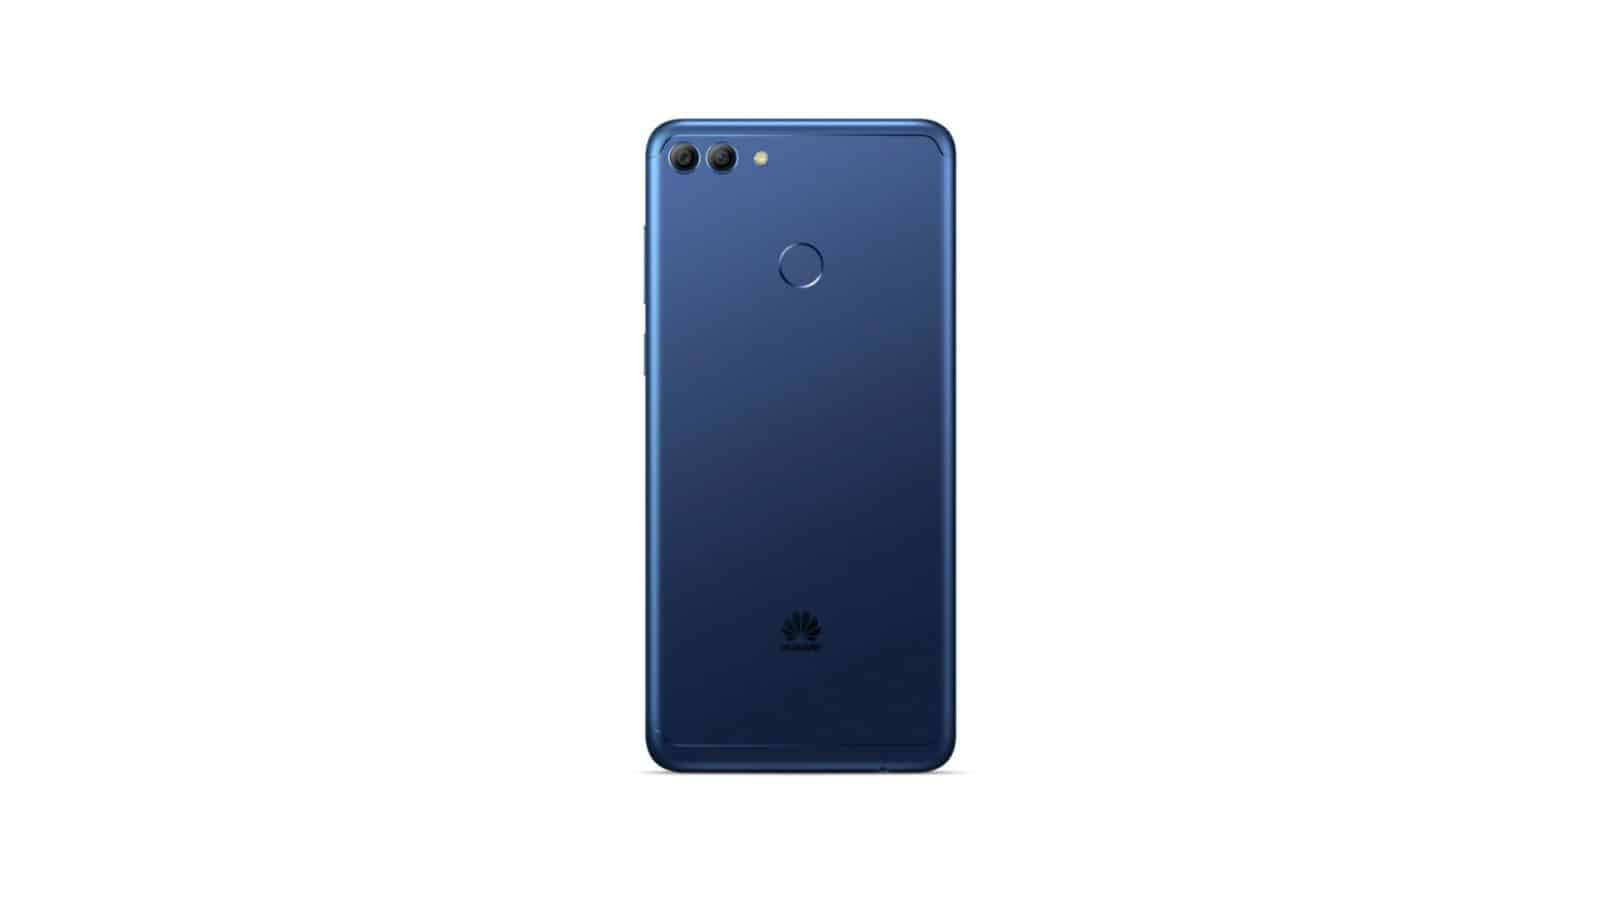 Huawei Y9 (2018) Wallpapers: Huawei Y9 Leaks In Blue & Black Alongside Specs